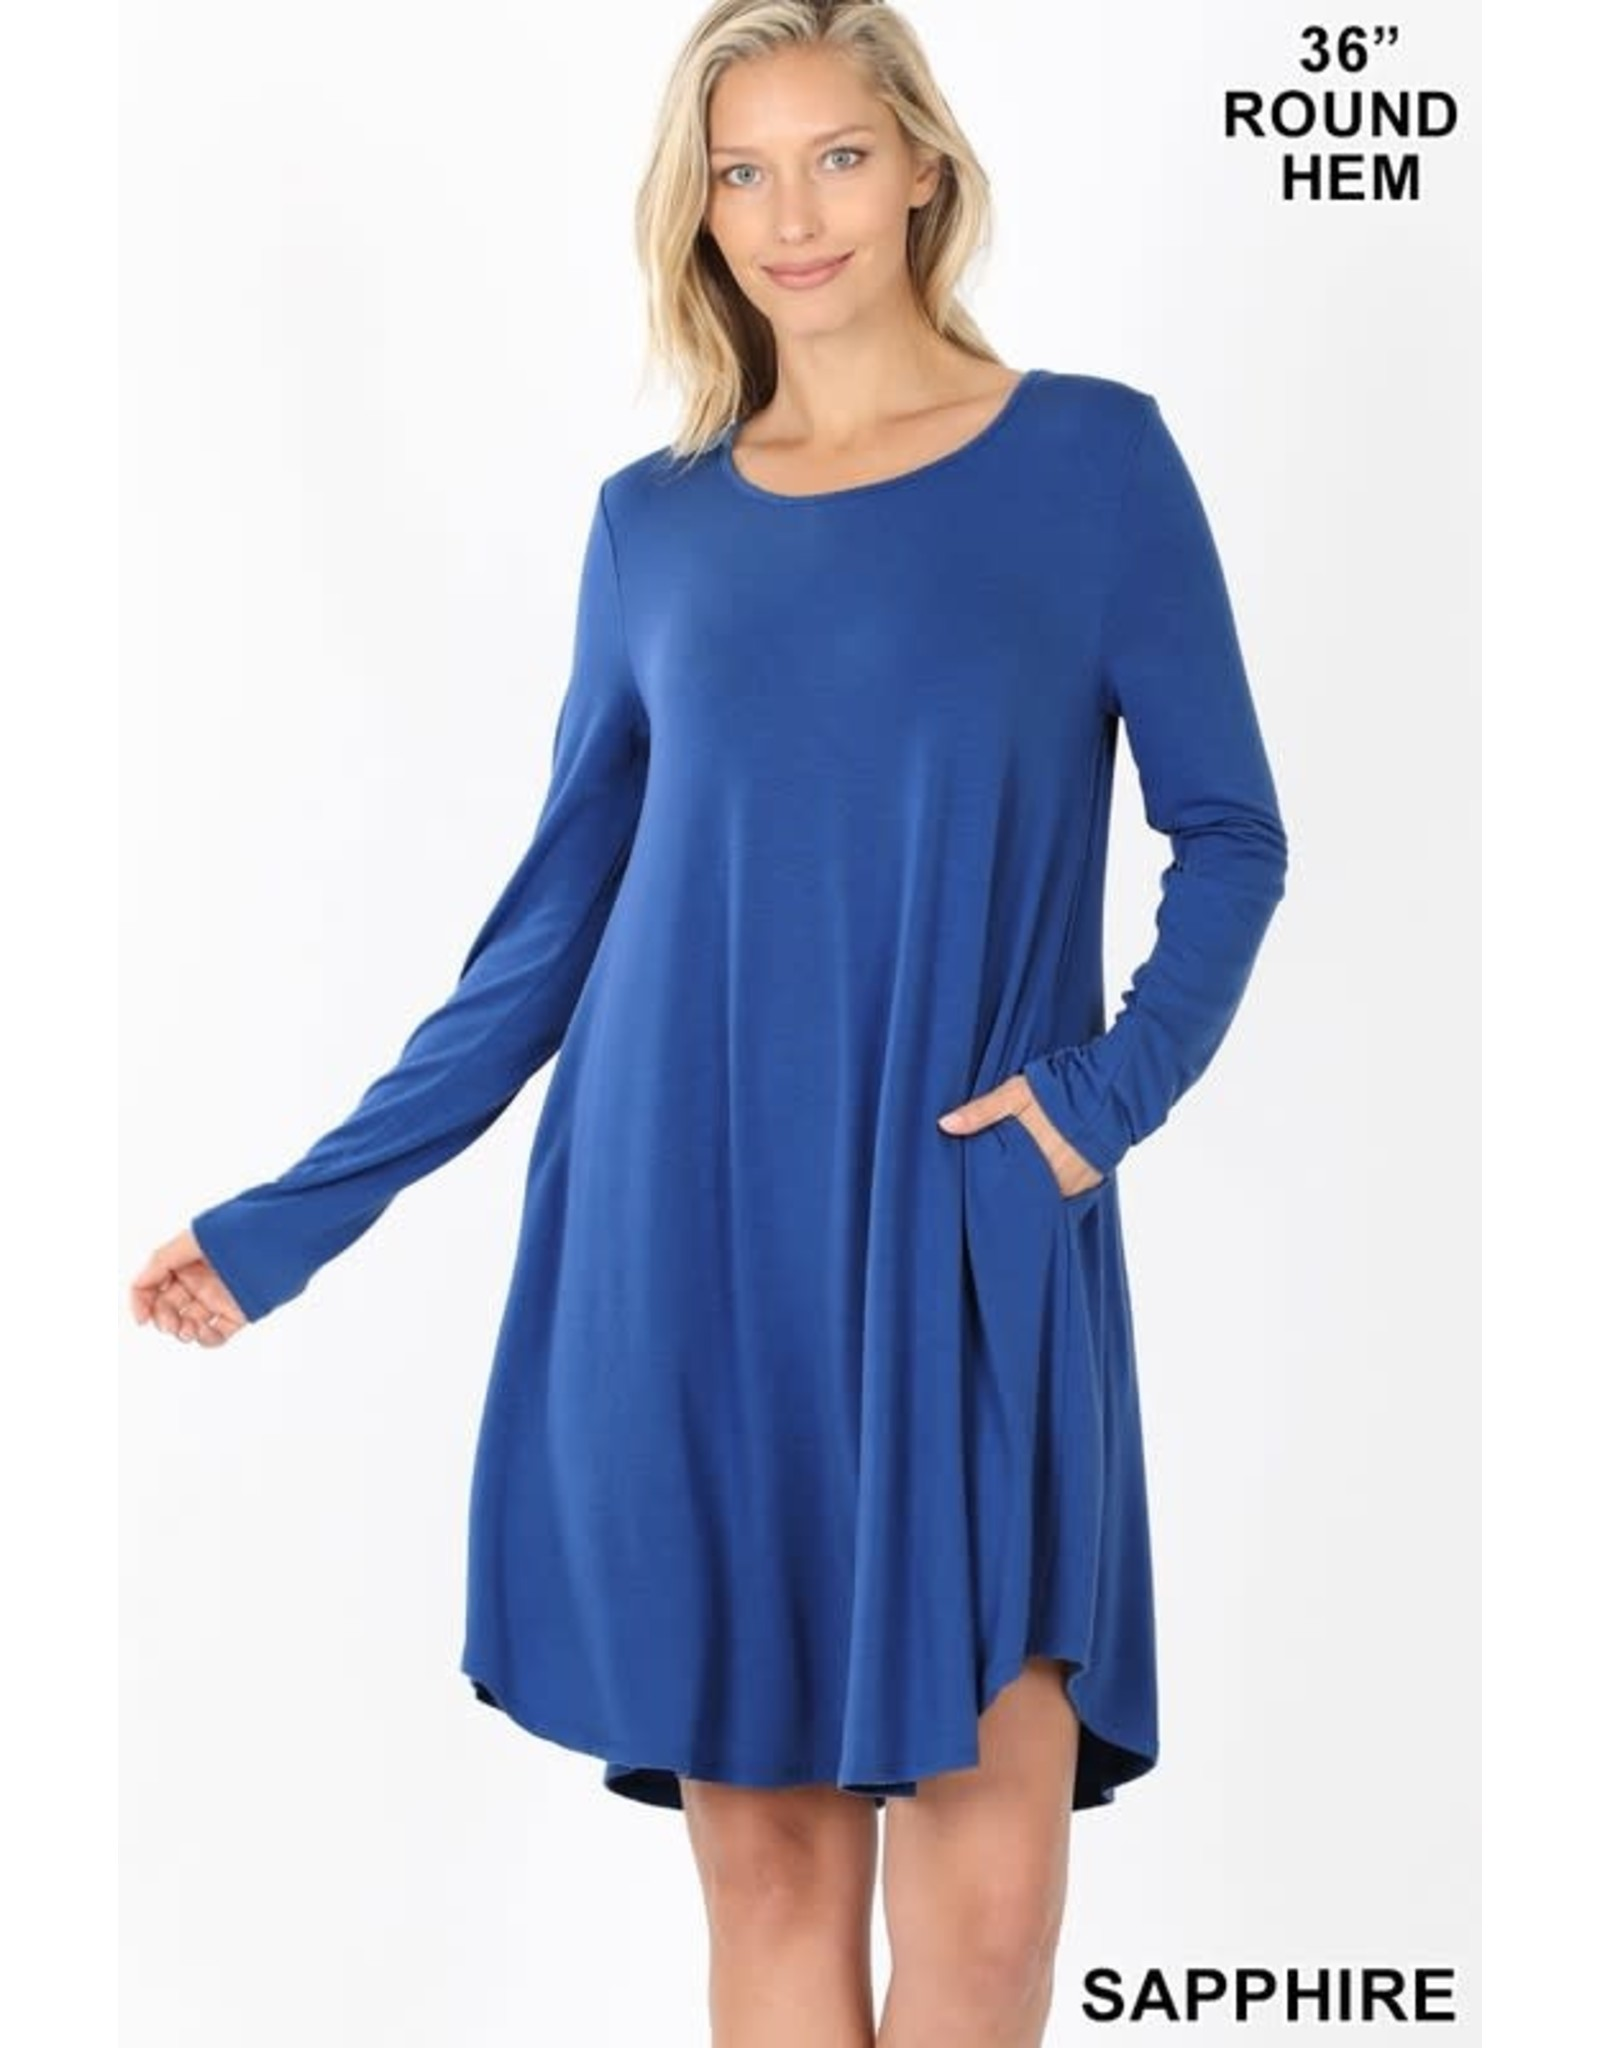 SAPPHIRE LONG SLEEVE ROUND NECK DRESS W/ POCKETS